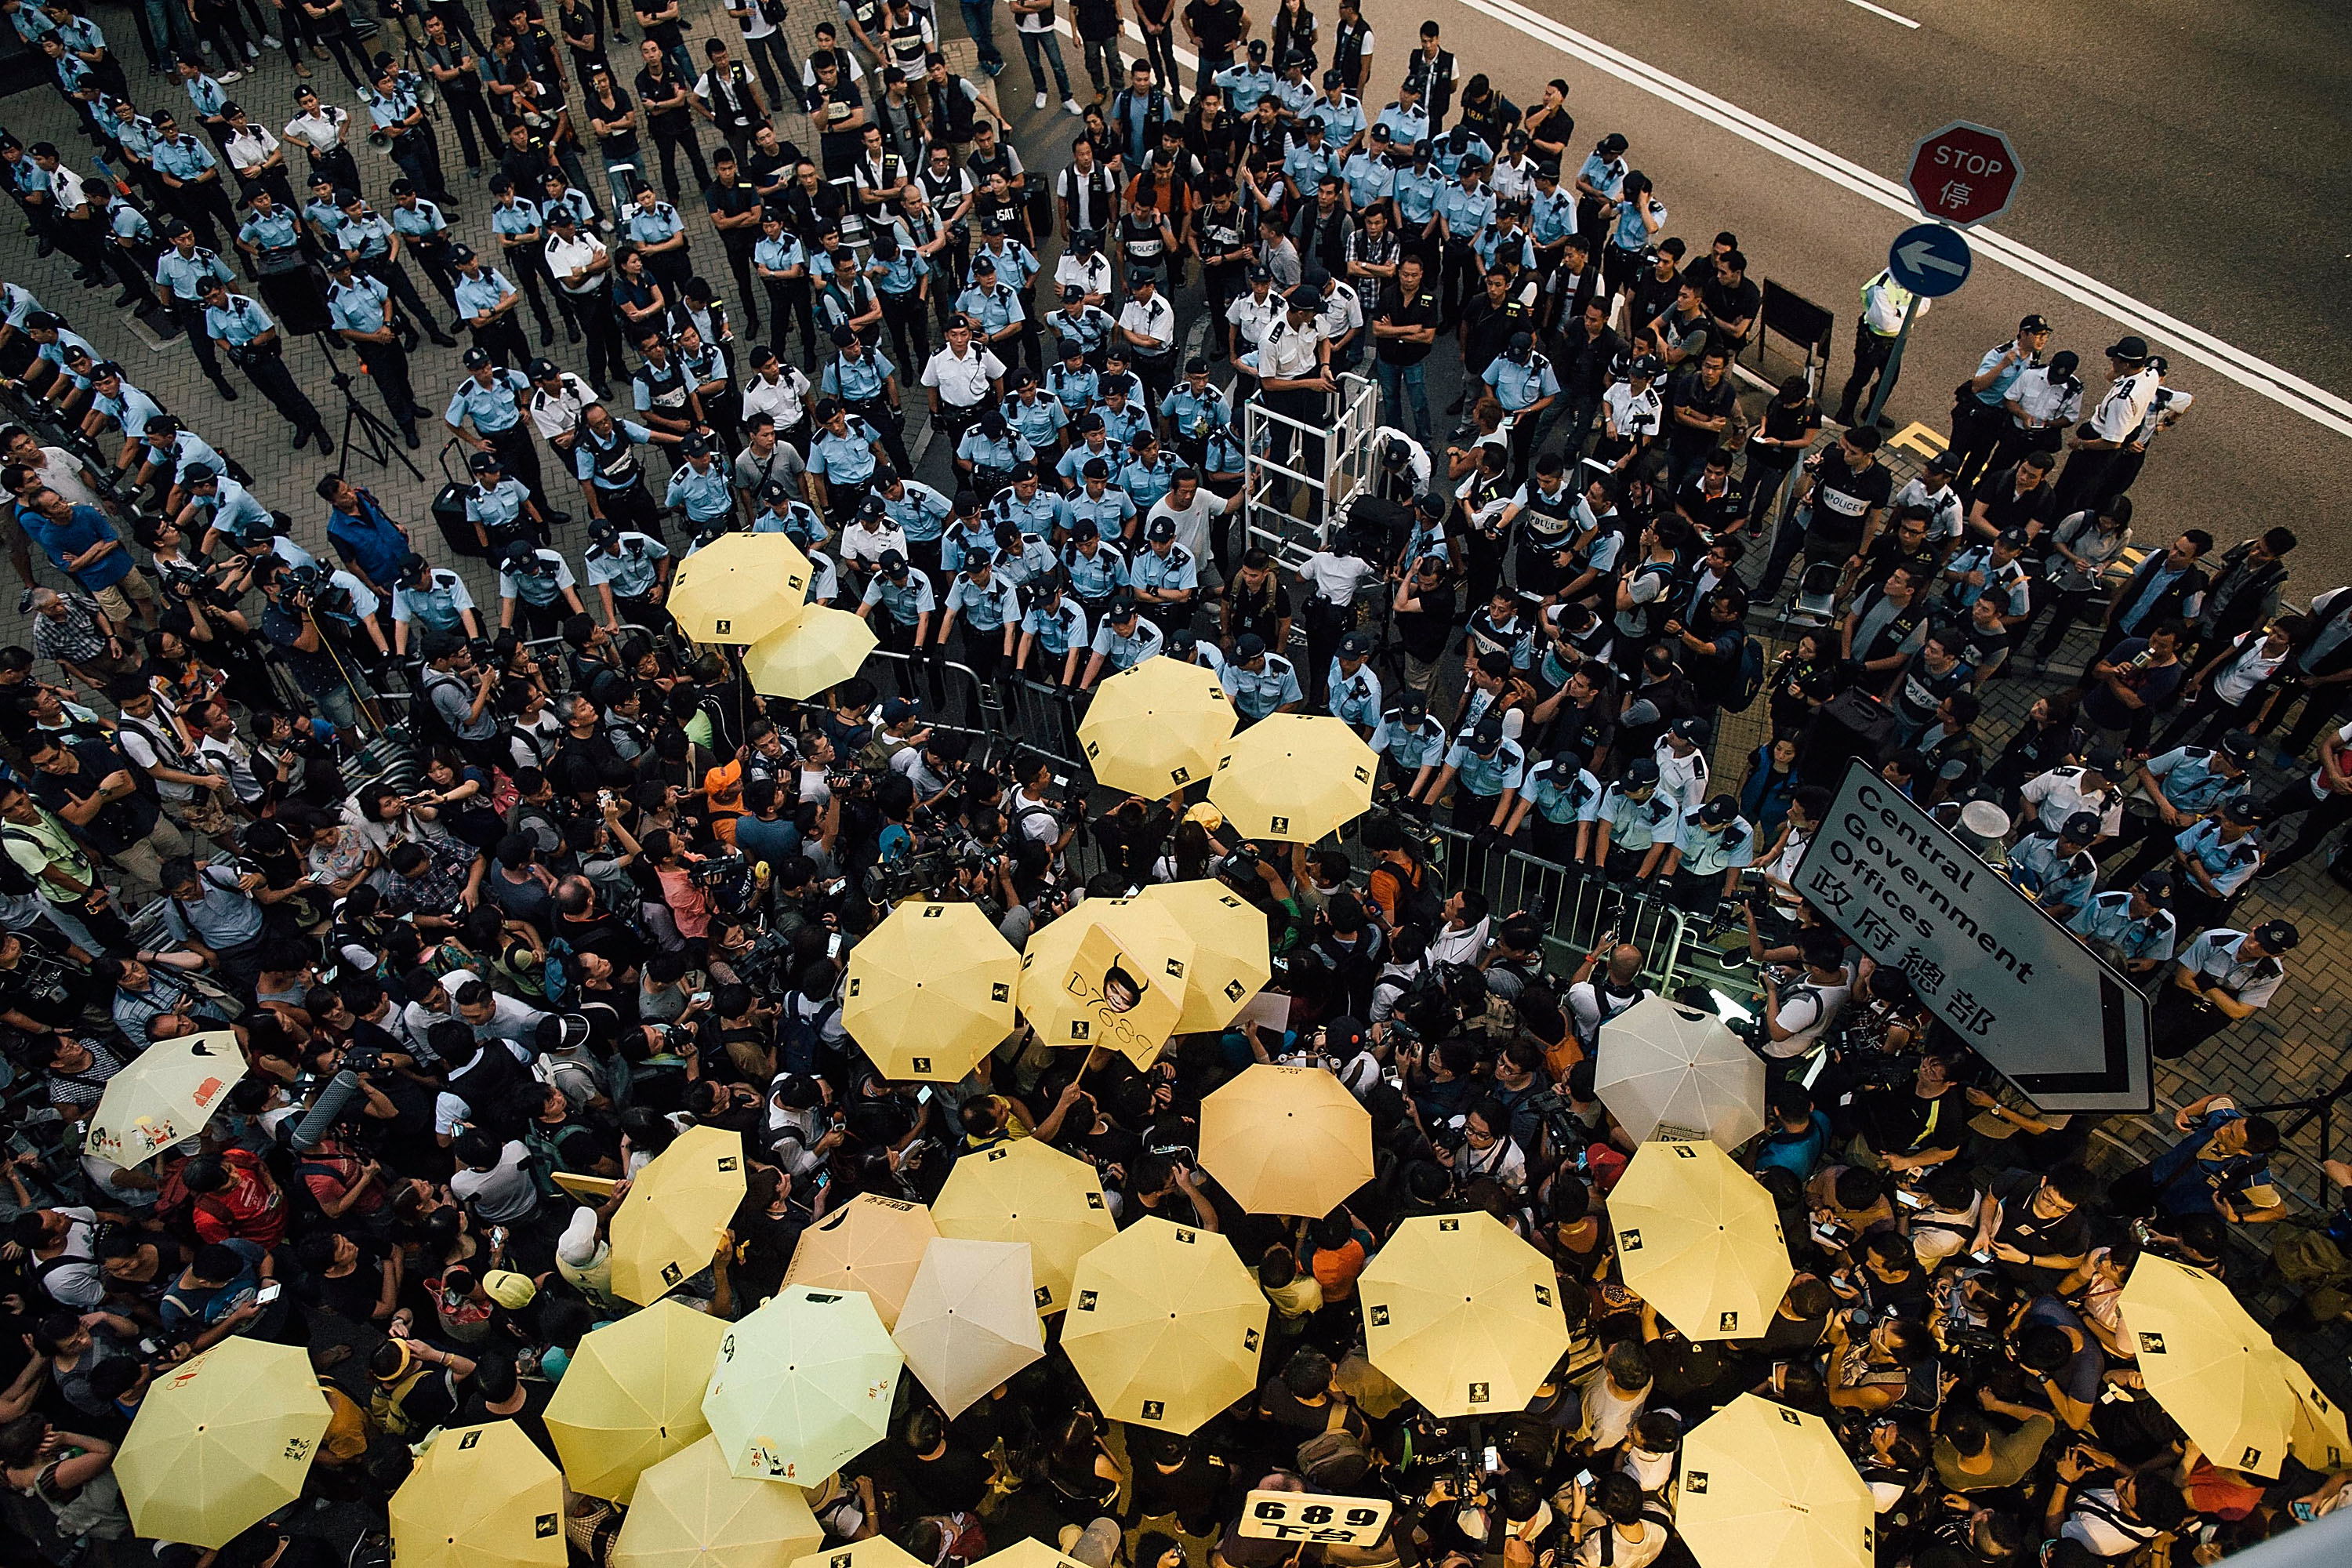 Outside of Hong Kong Government Complex at Admiralty district in Hong Kong on Sept. 28, 2015